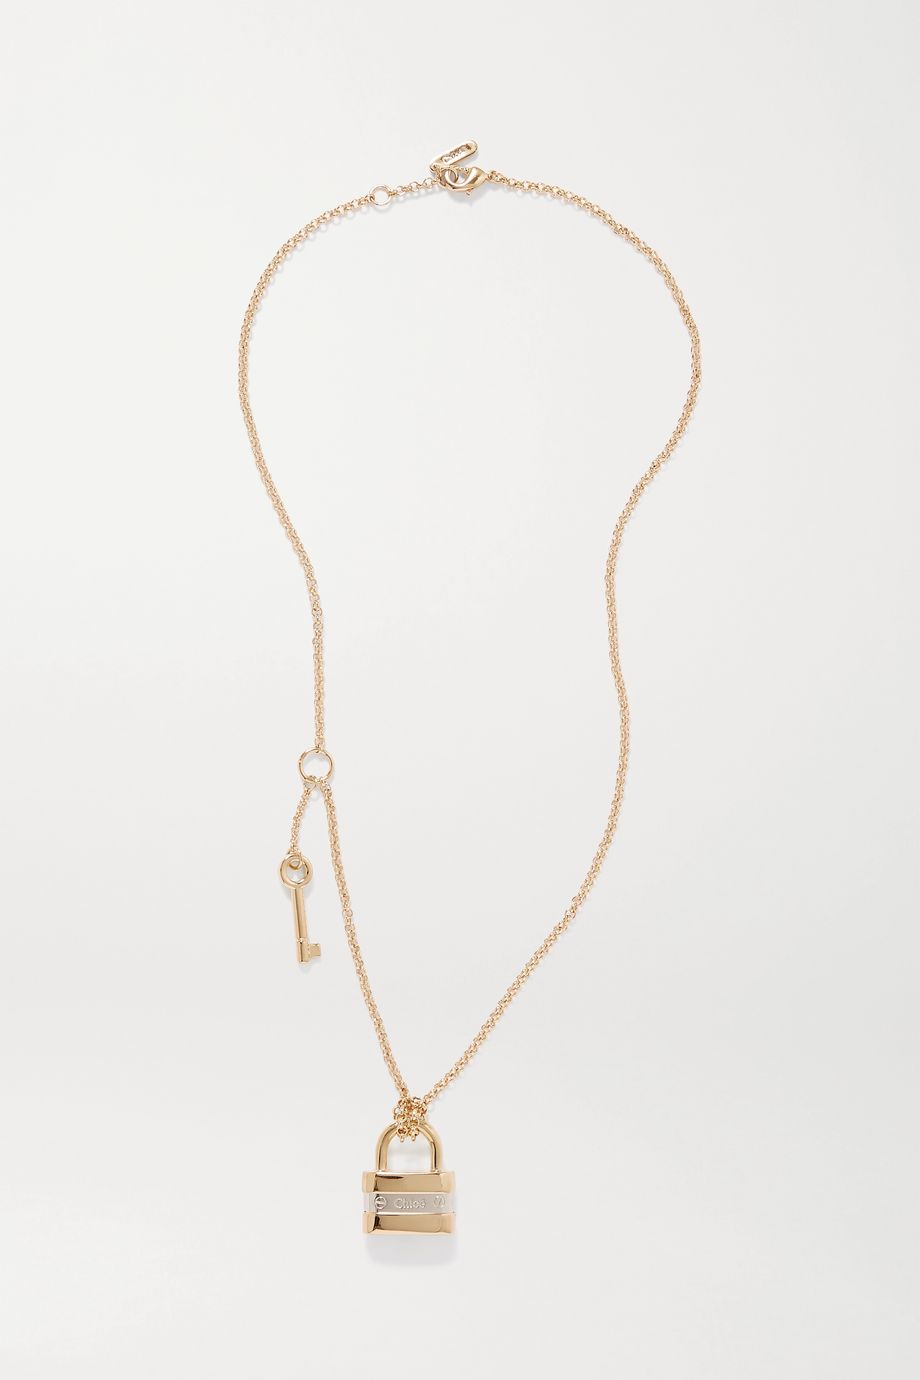 Chloé Colleen gold and silver-tone necklace